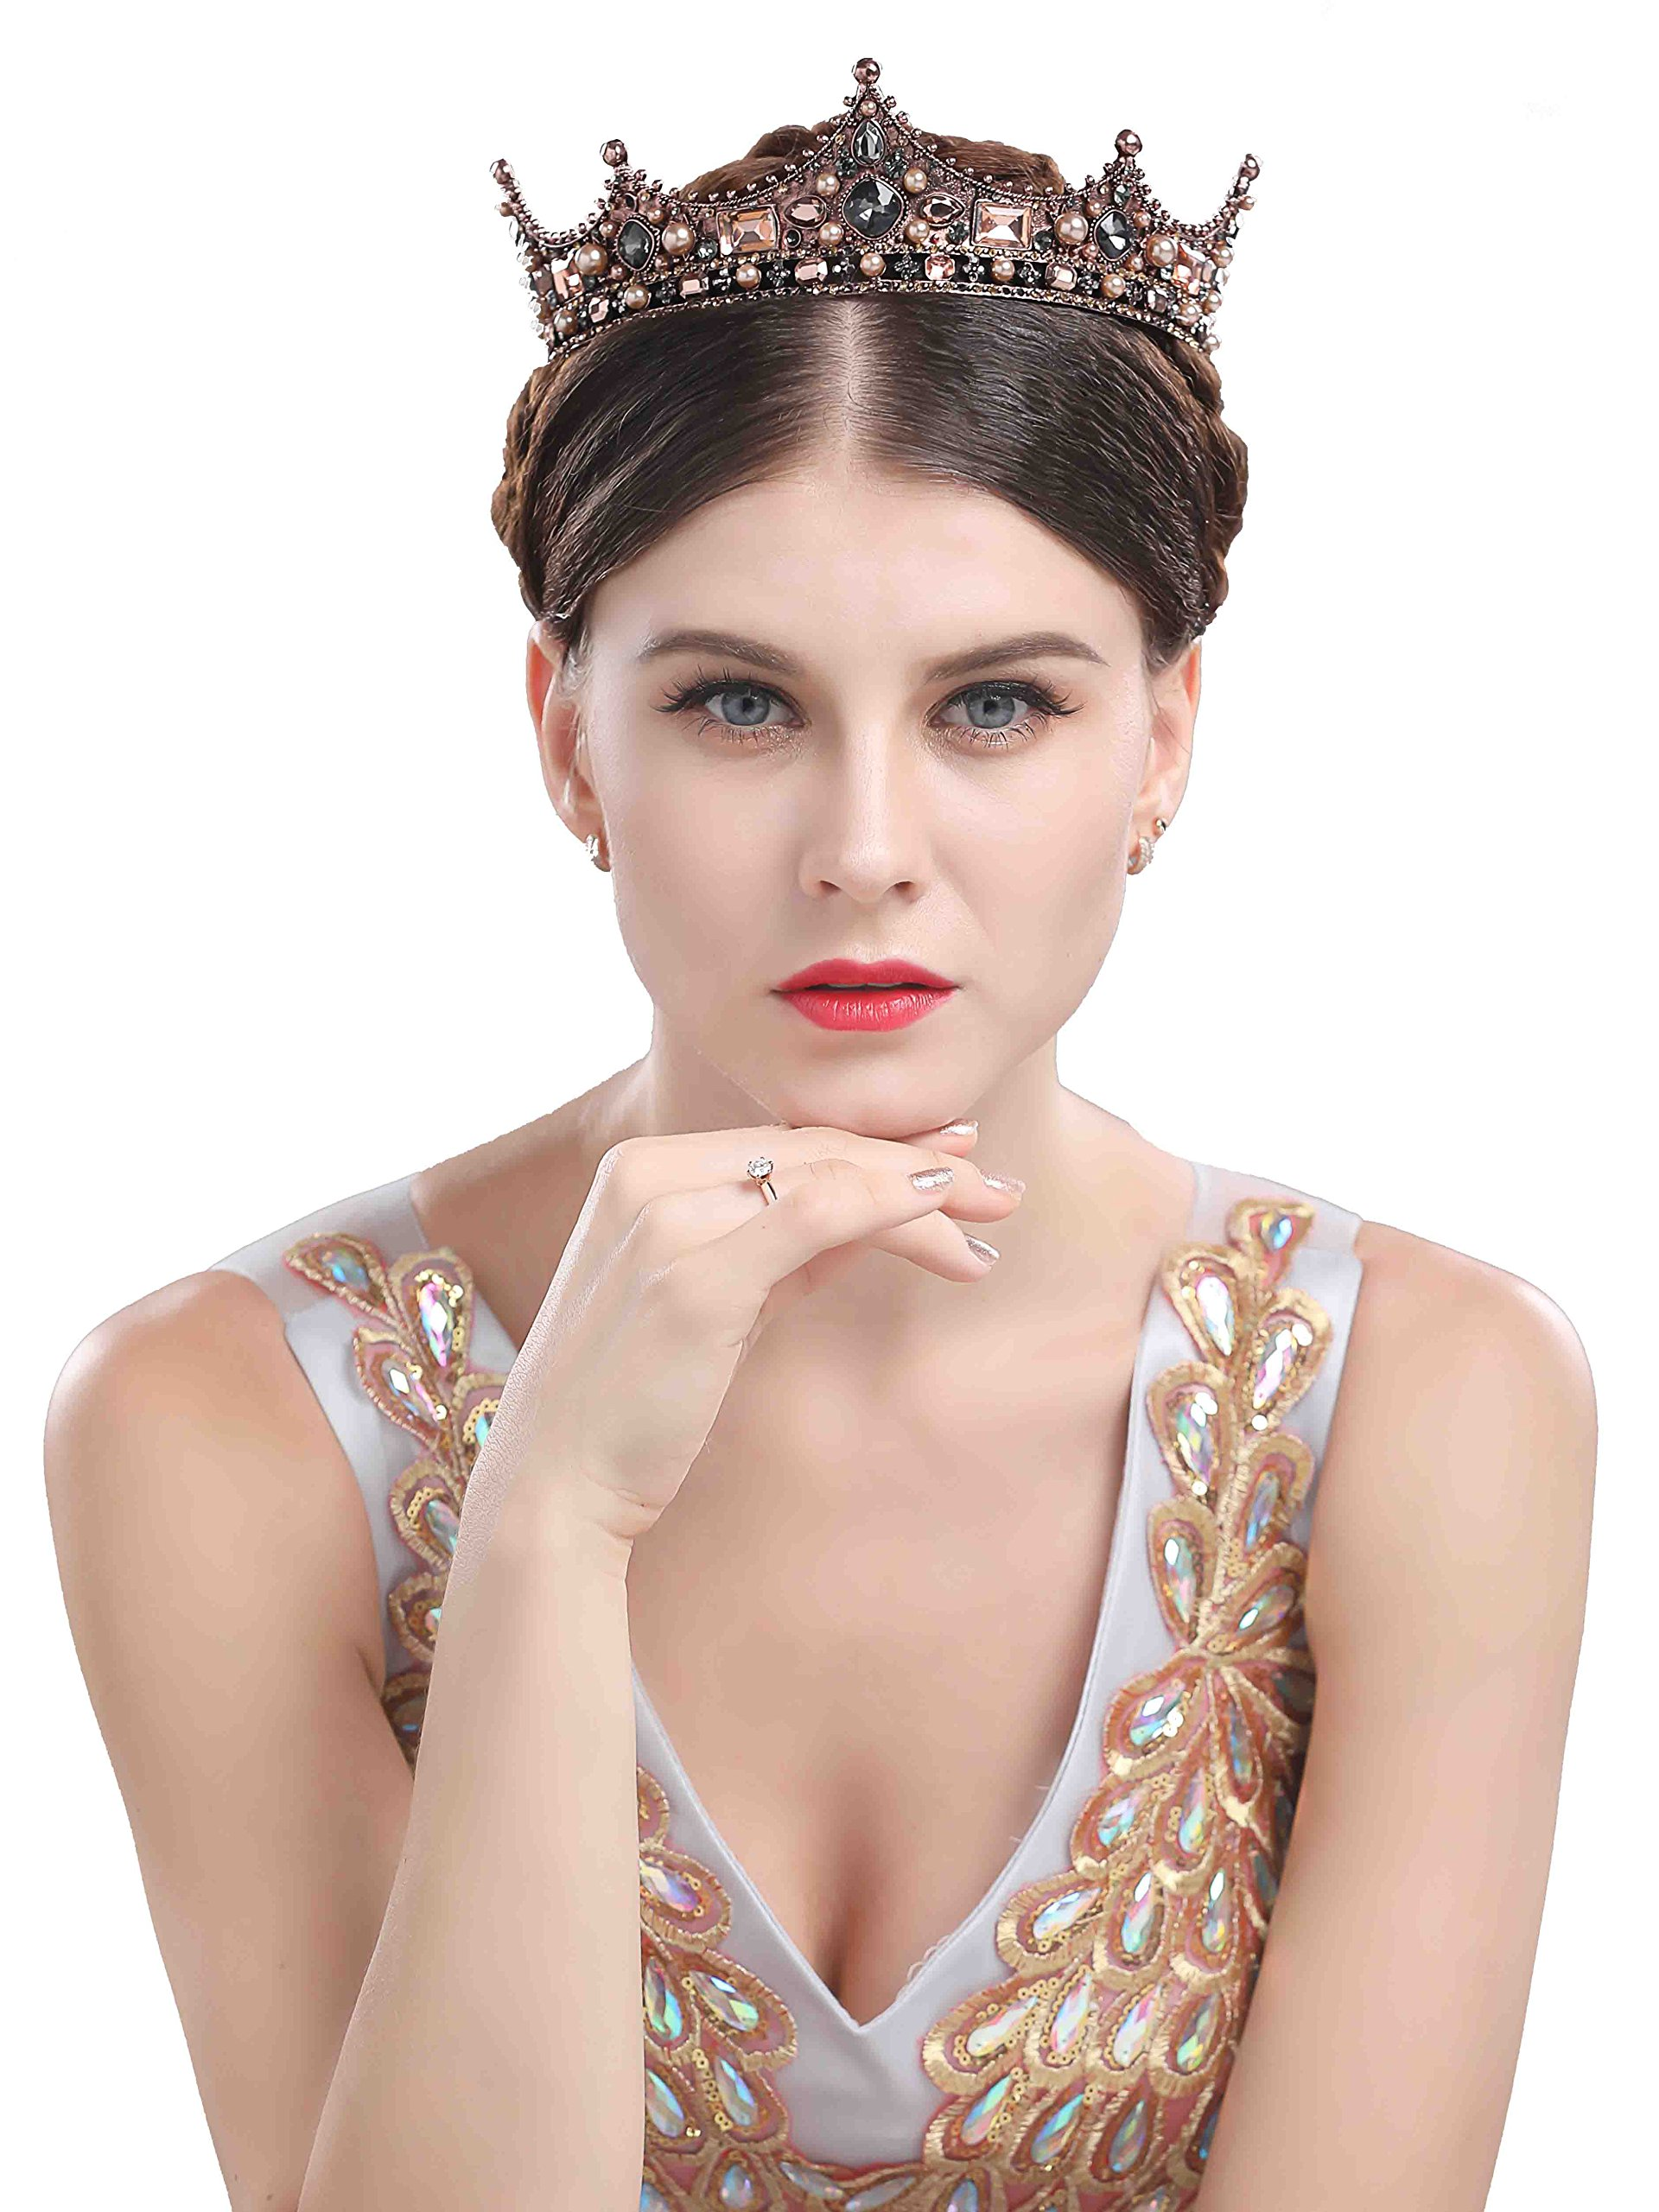 Chicer Baroque Wedding Crown Tiara Queen Princess Vintage Rhinestone Tiara accessories For Women and Girls (Style A).